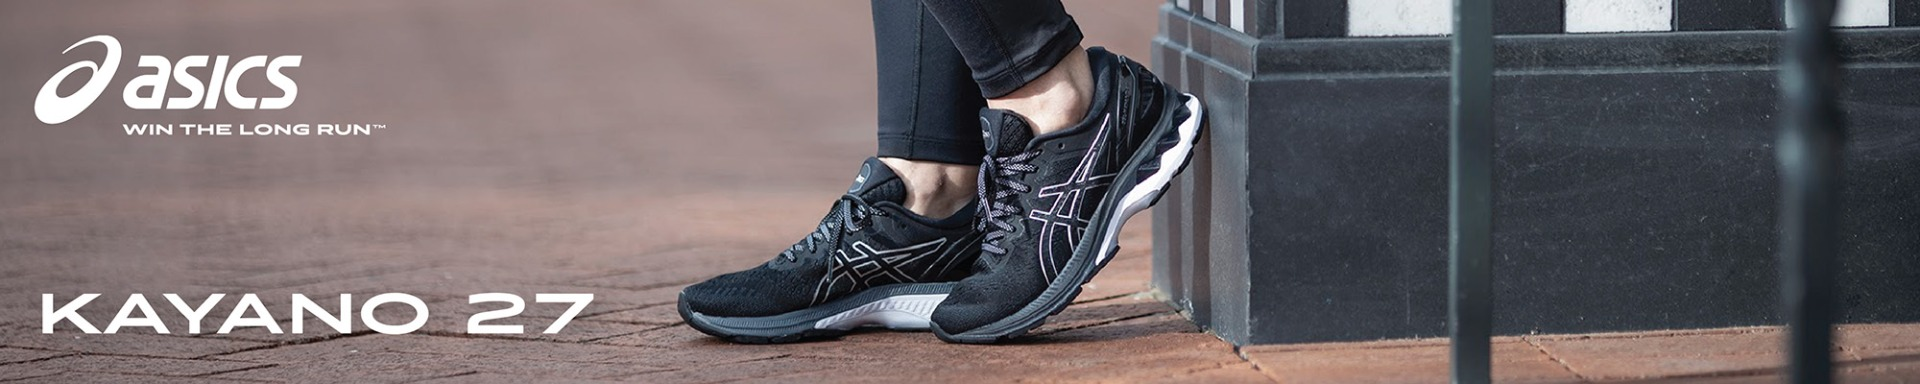 The new ASICS GEL-Kayano 27 is here